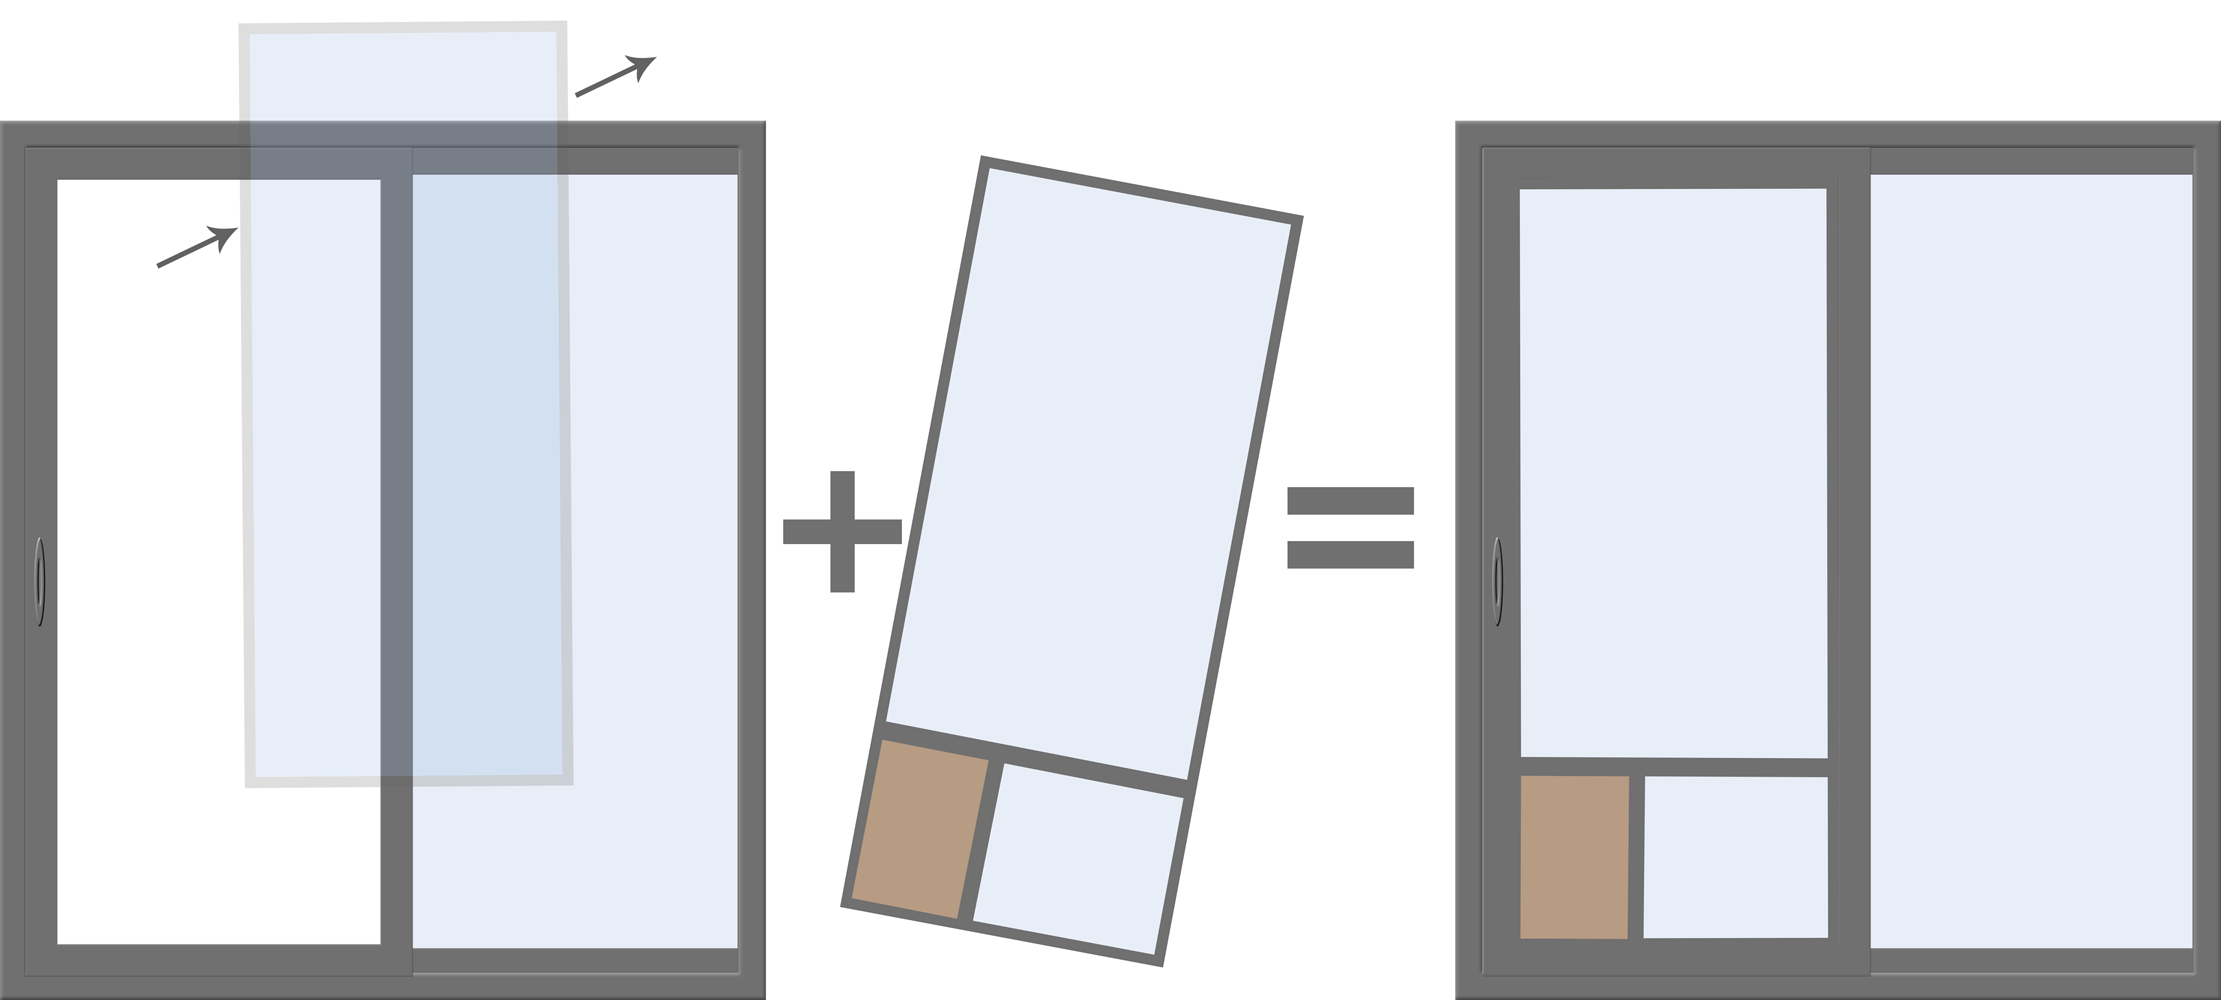 replacing your sliding glass door glass with another piece of glass with a pet door installed